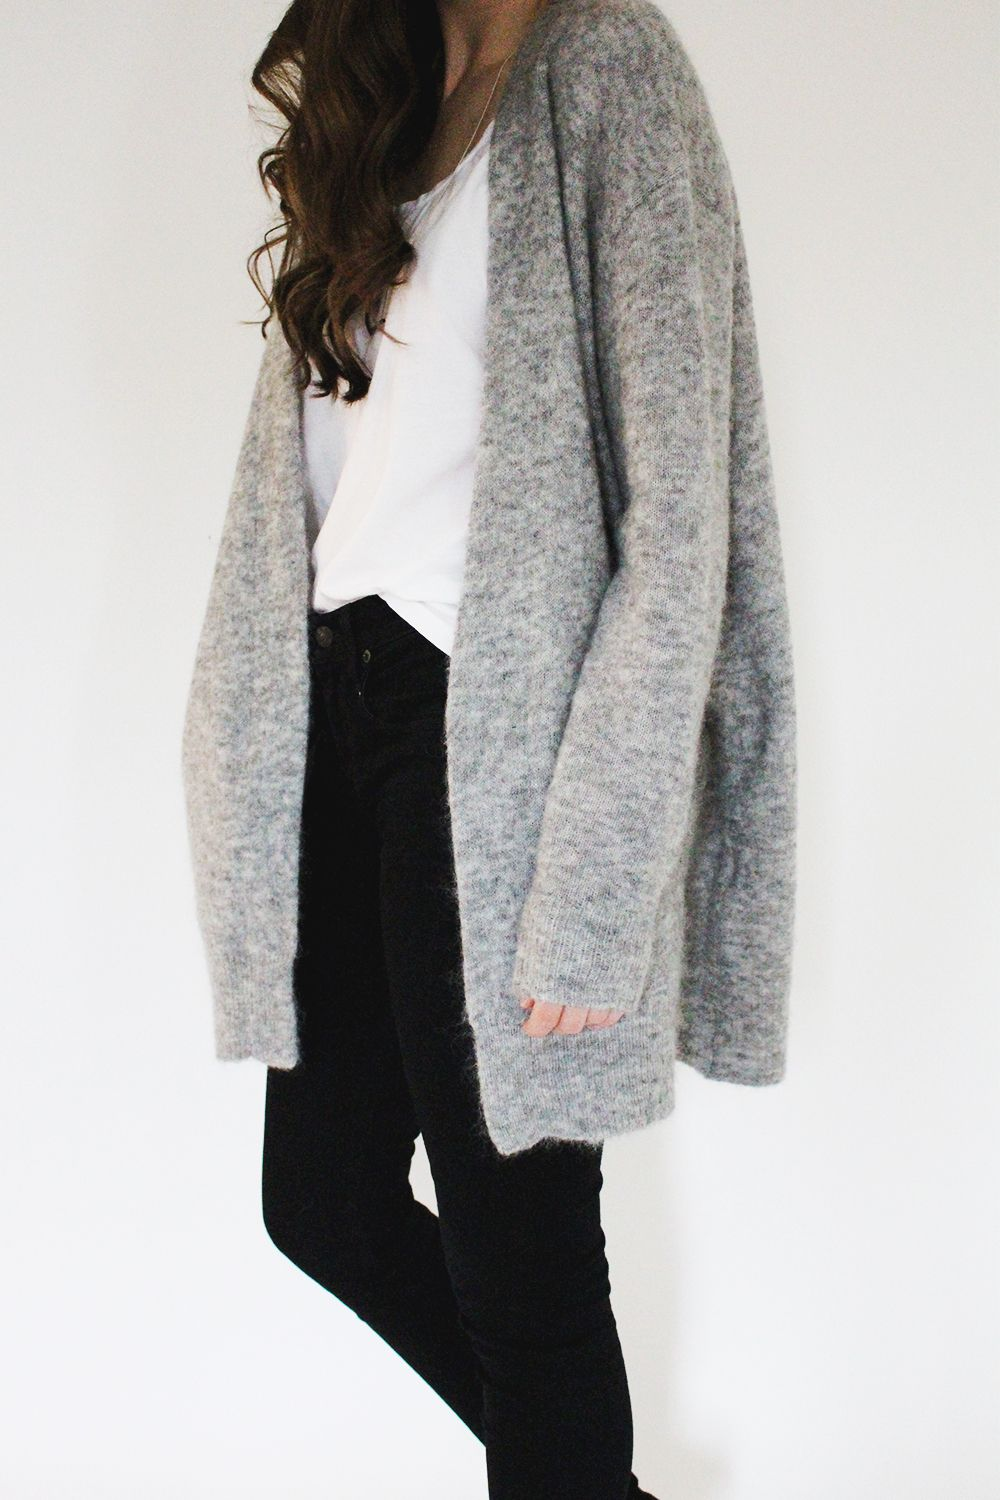 Wear to what under dark gray cardigan fotos